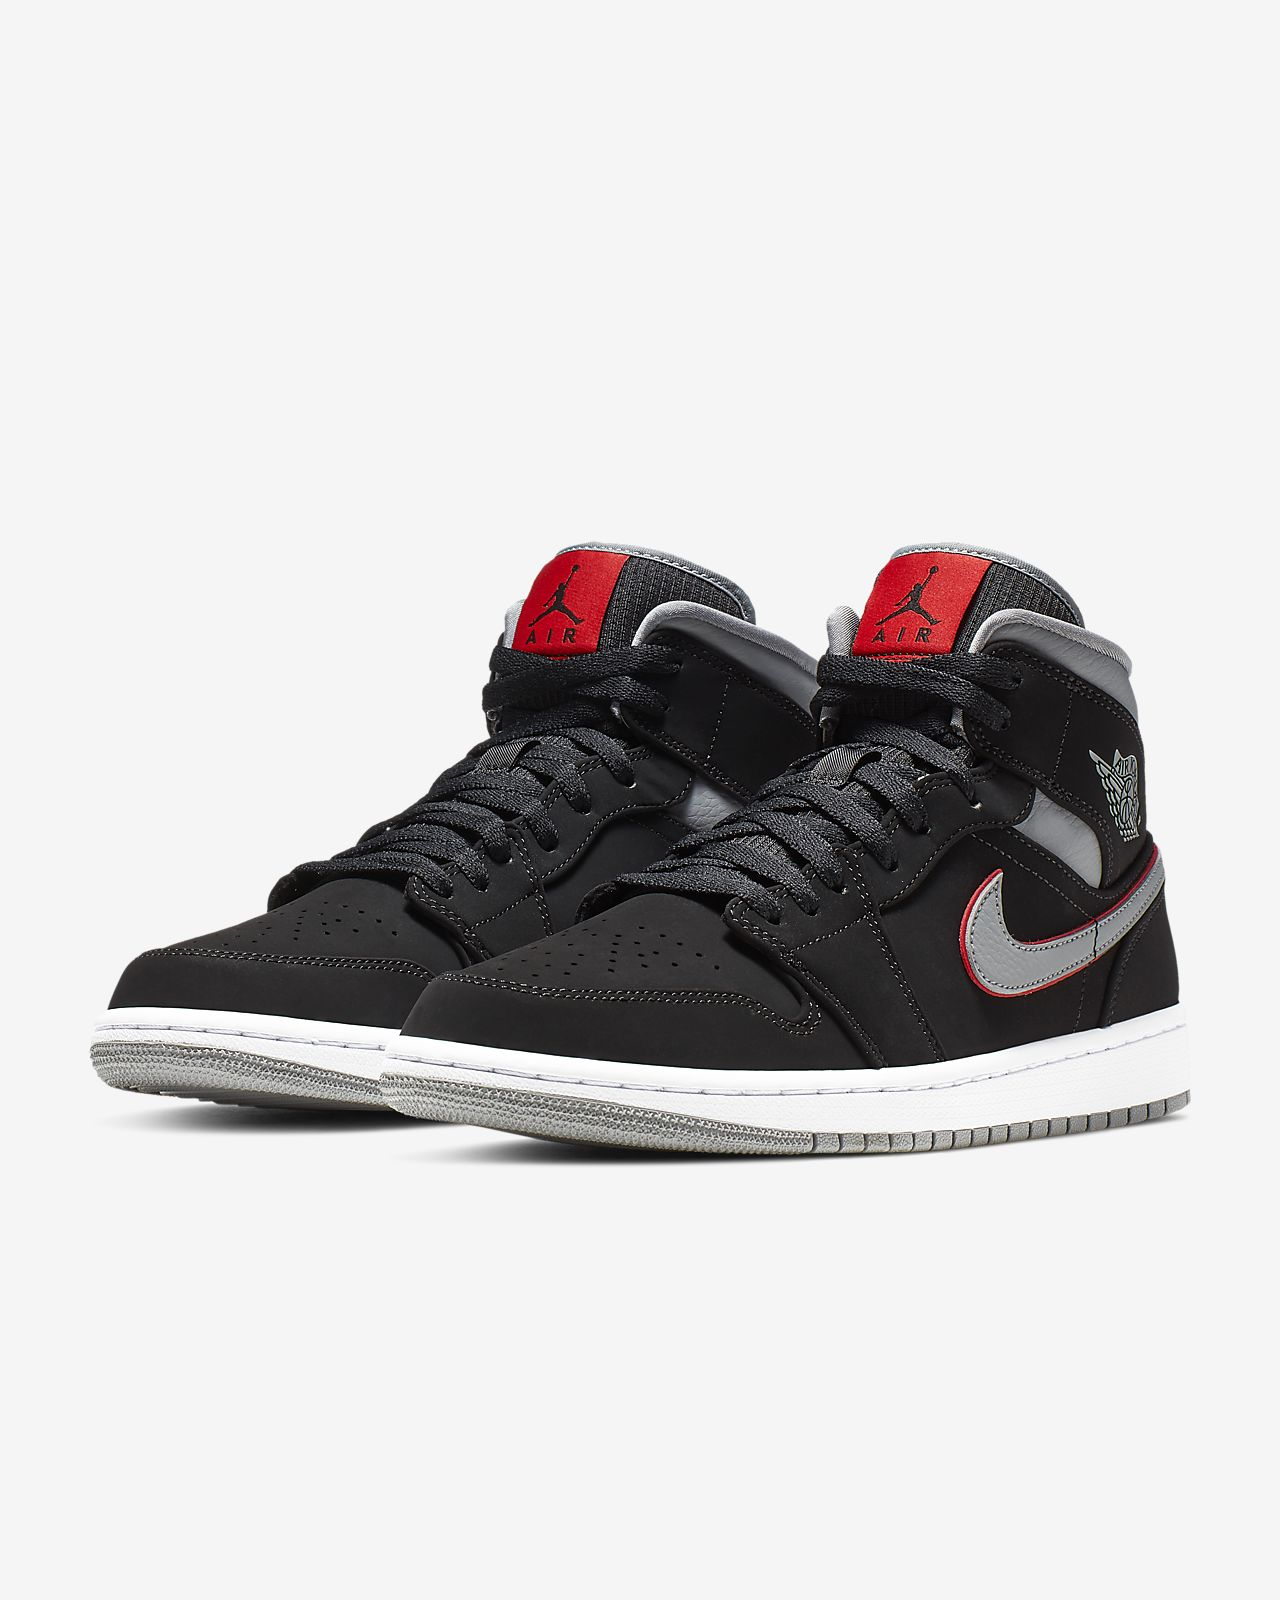 pick up 04b0d b92a8 ... Air Jordan 1 Mid Men s Shoe